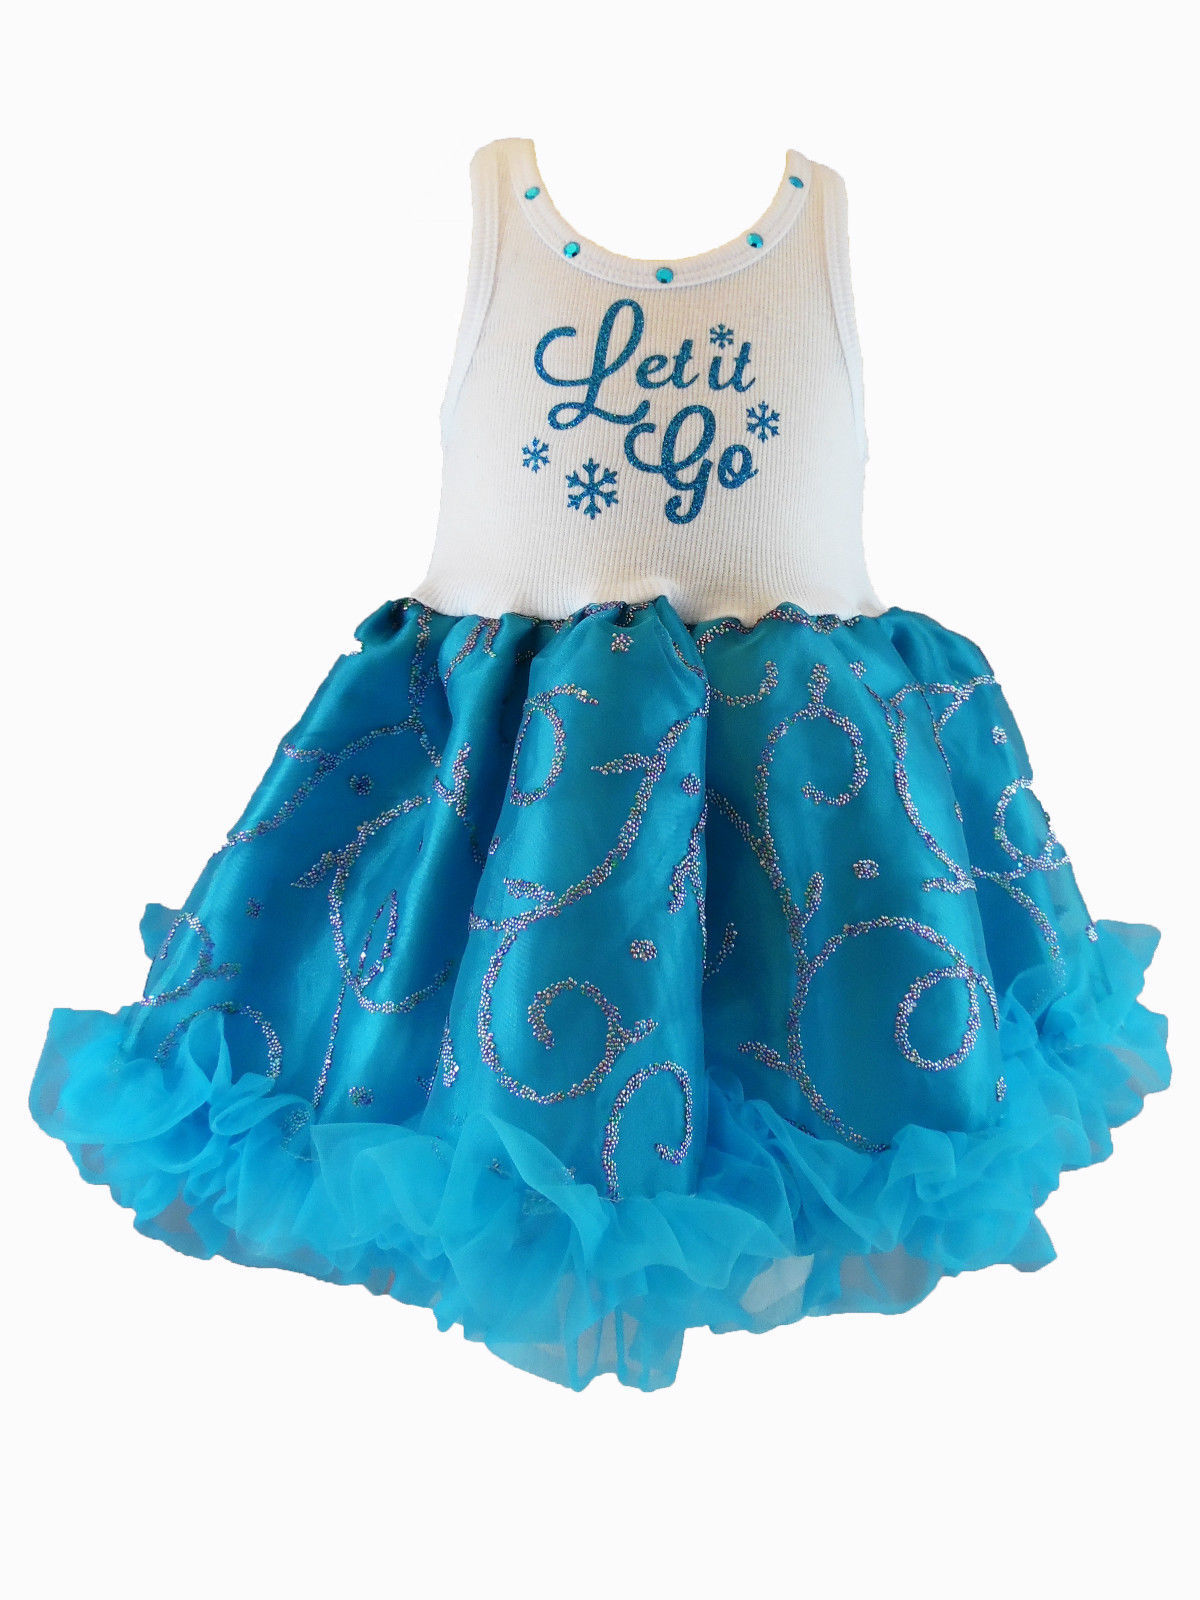 Image 0 of Chic Let It Go Chiffon Sleeveless Tutu Dress 3-6x Cupcakes & Kisses Turquoise